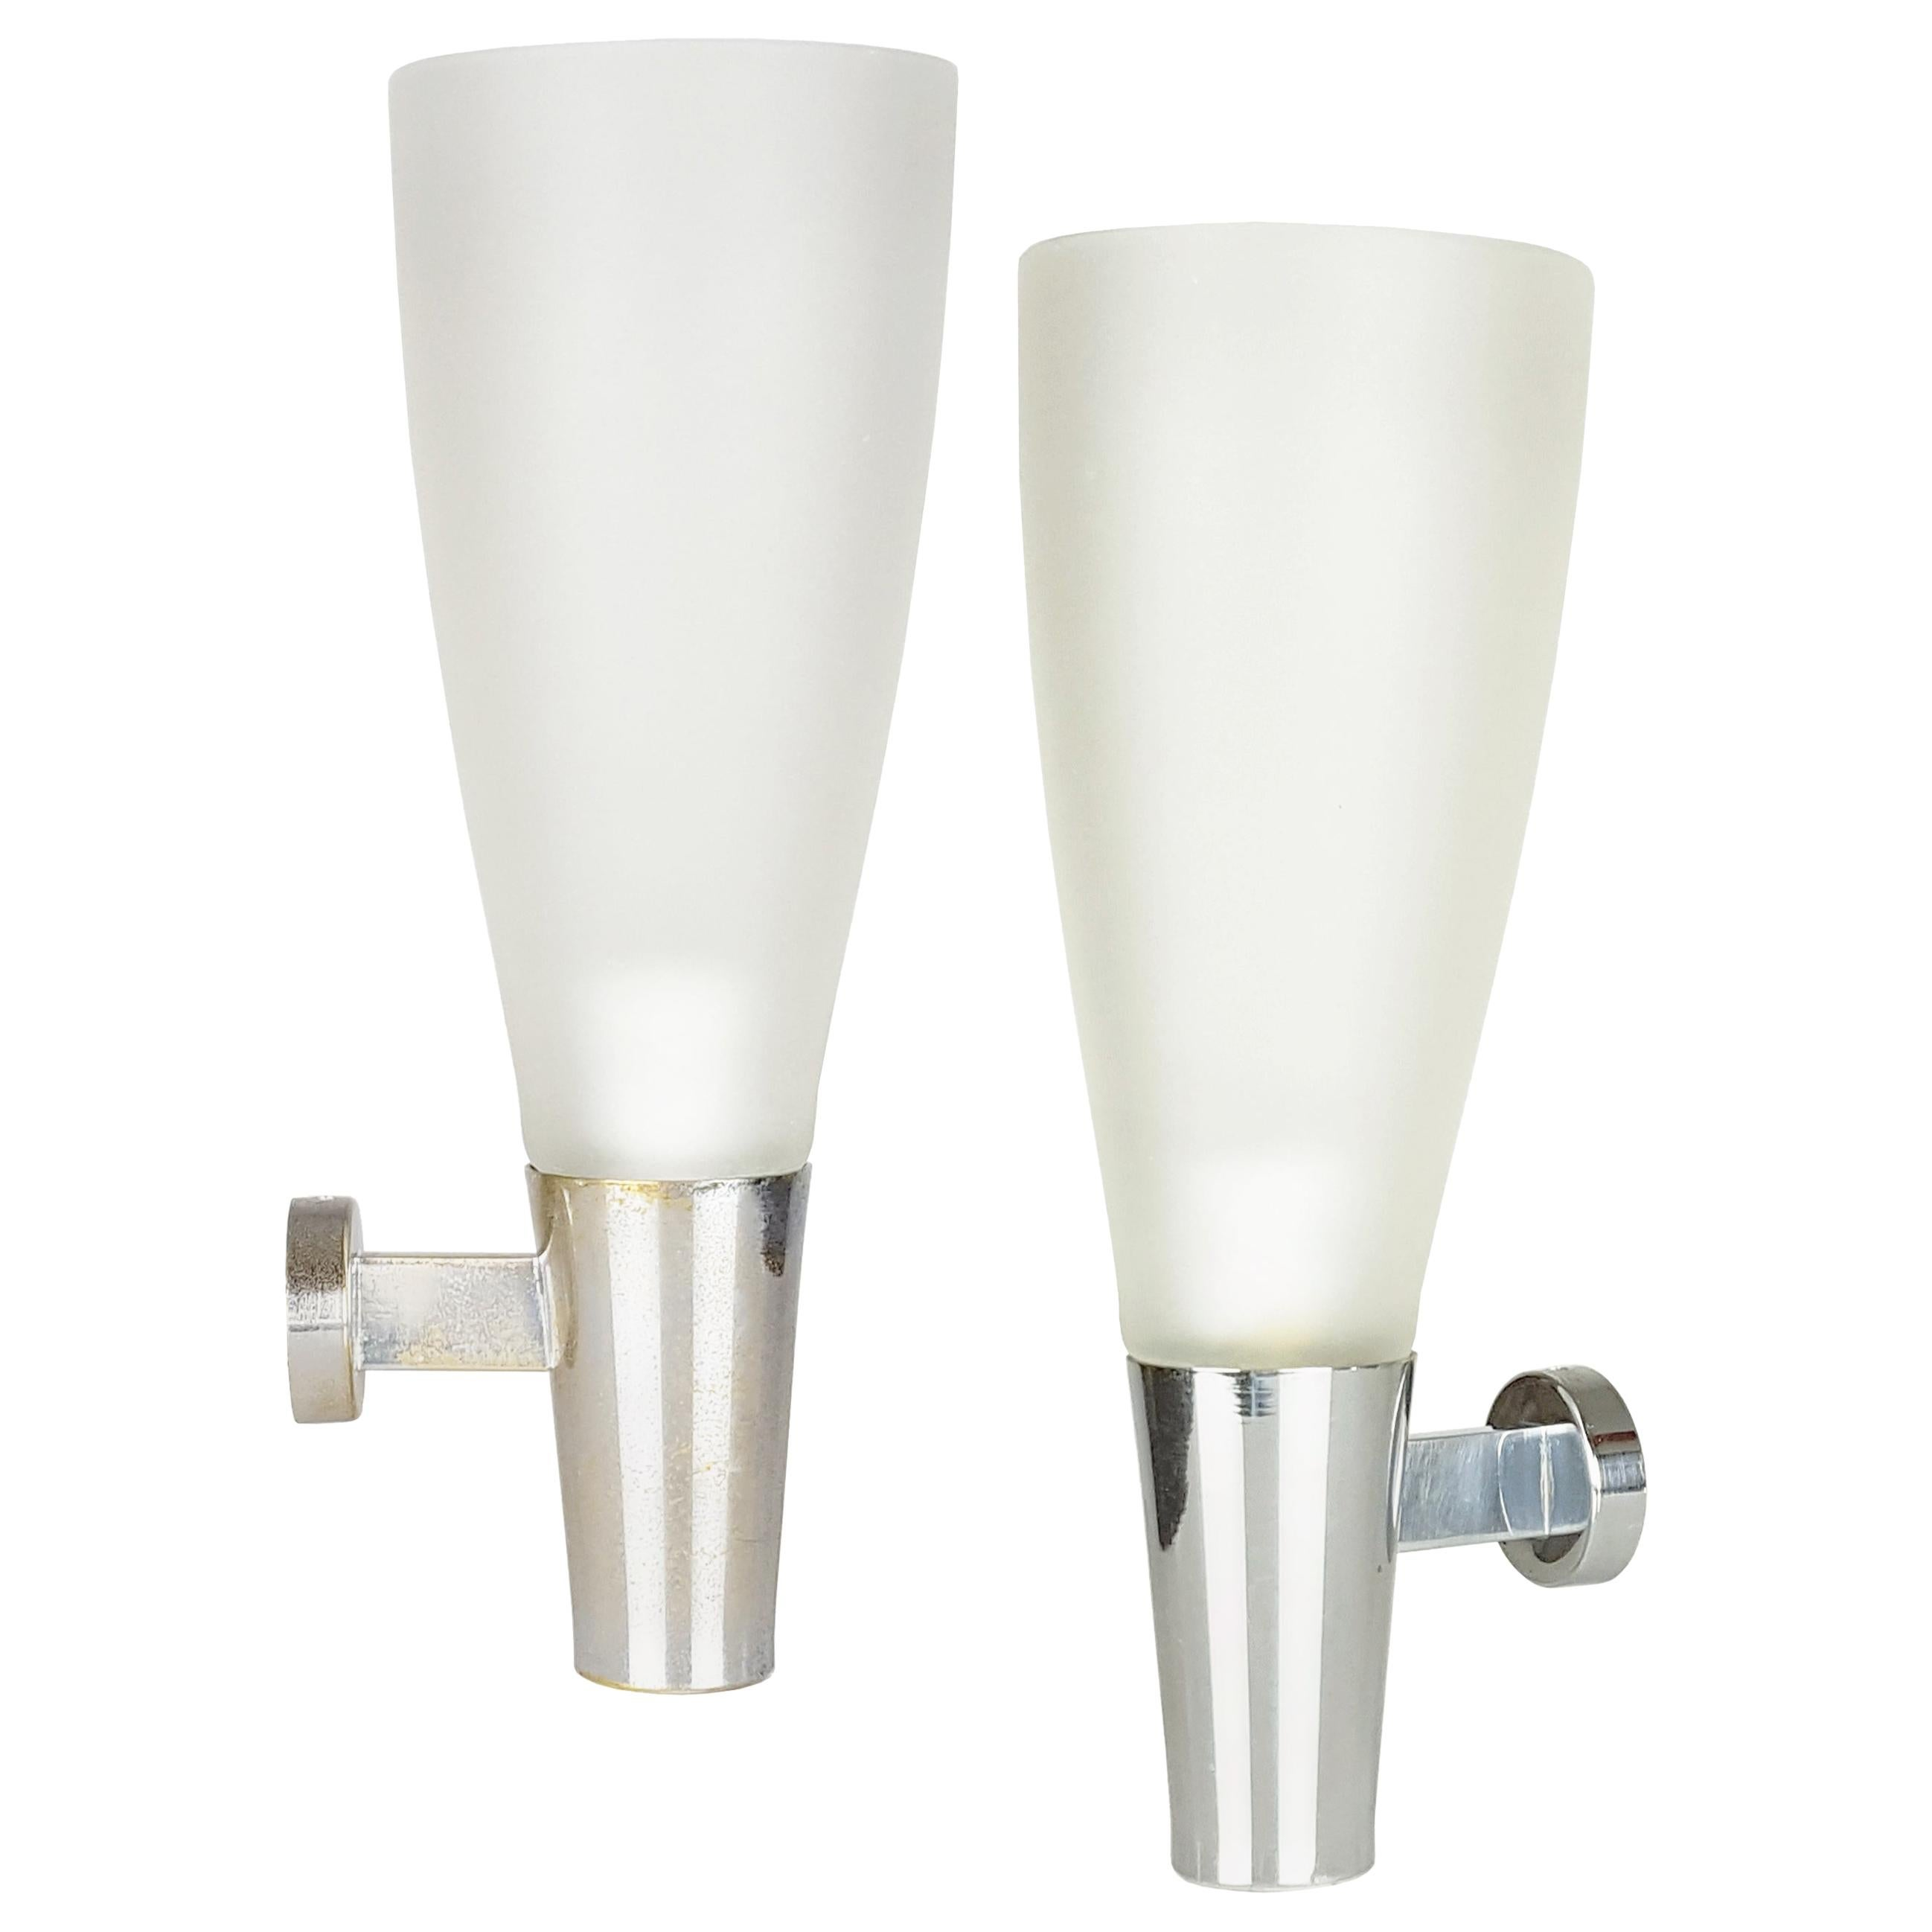 Pair of Glass & Chromed Brass Midcentury Sconces by P. Chiesa for Fontana Arte